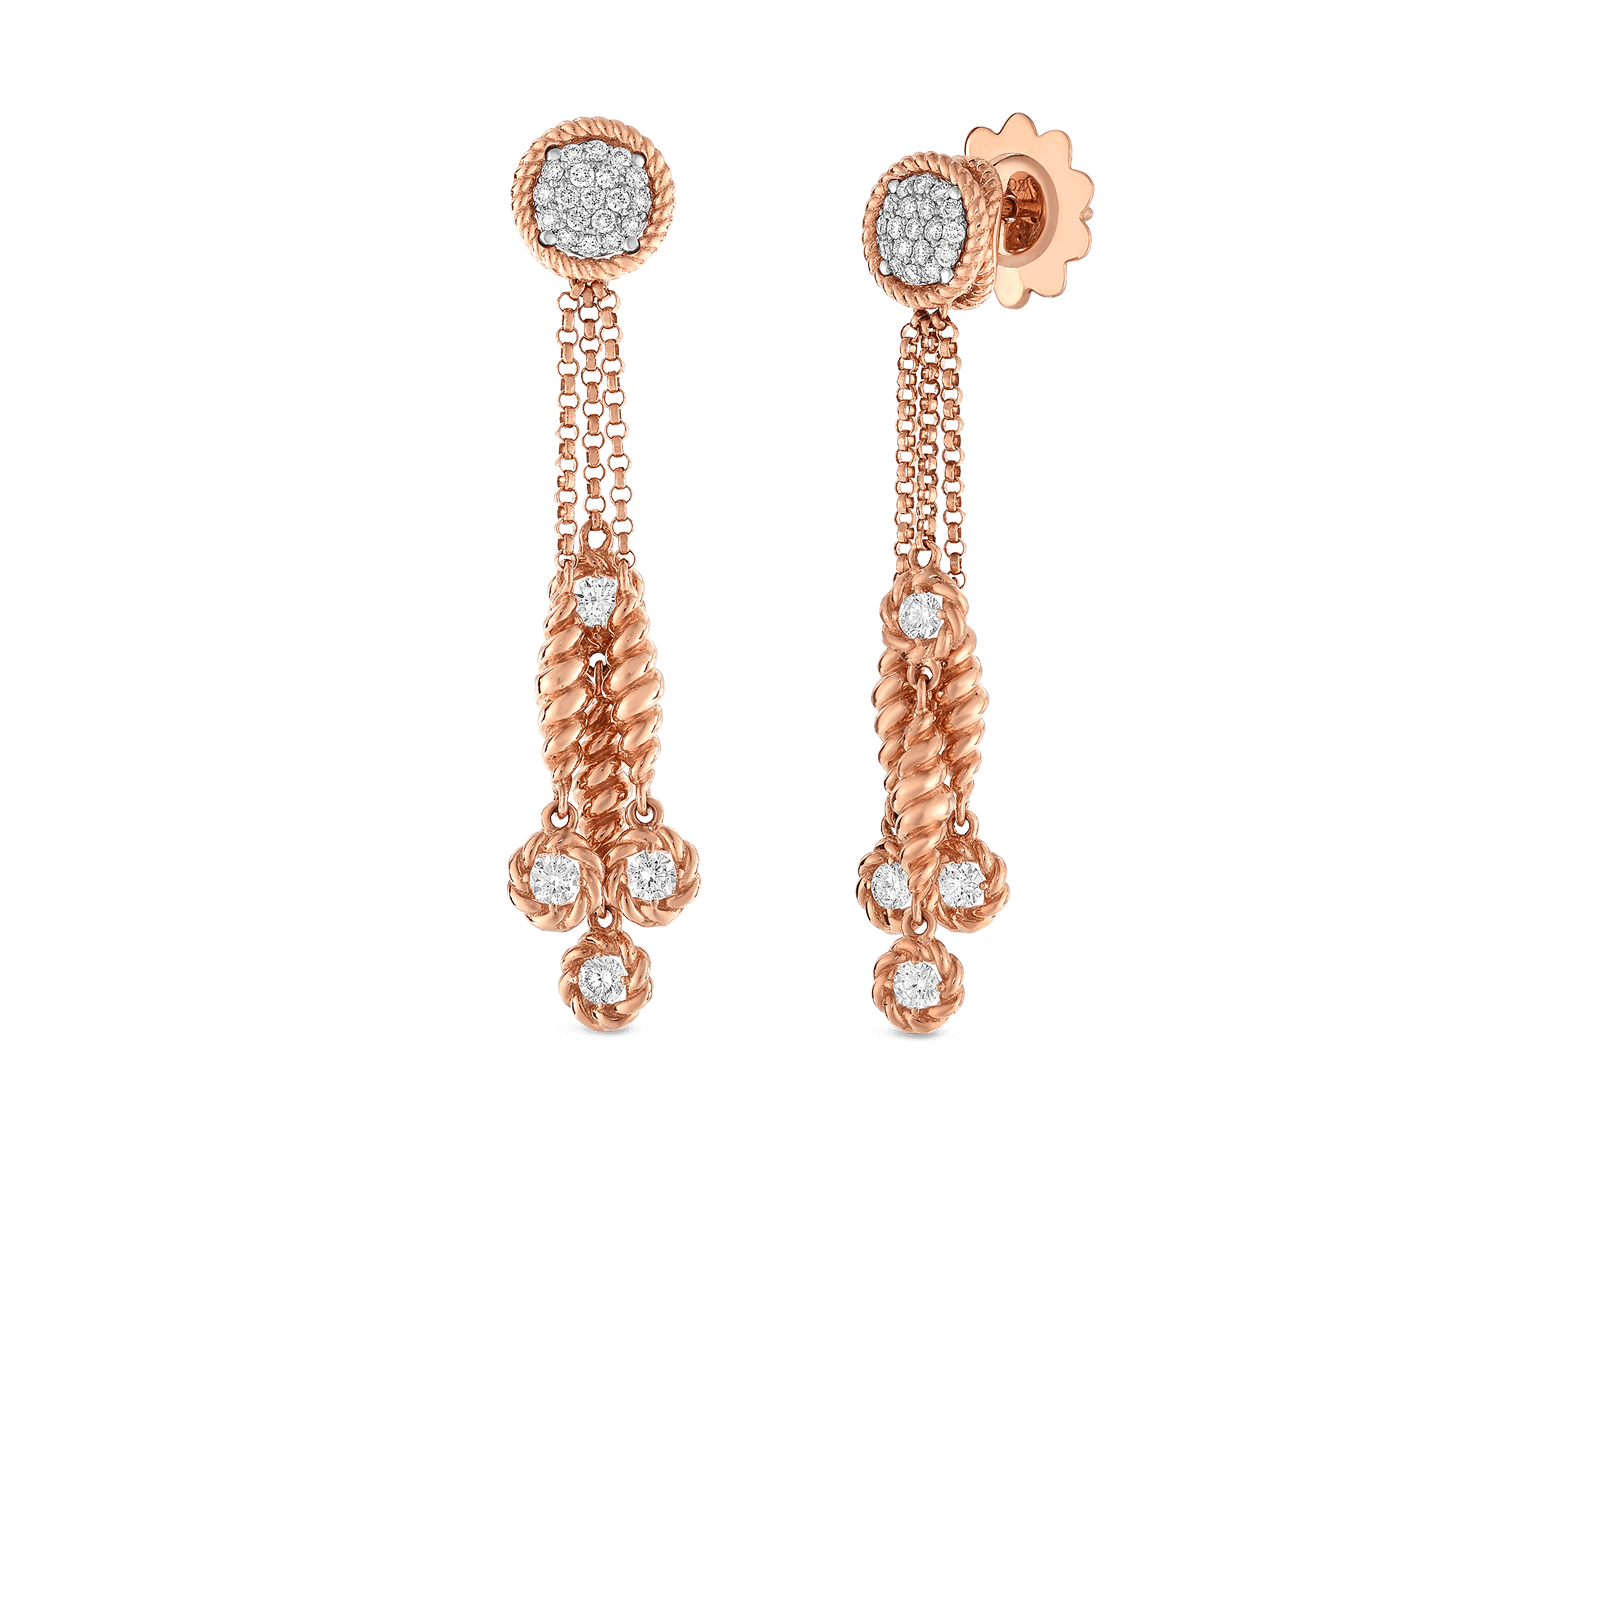 Roberto Coin New Barocco Jewelry Collection | Official US Website